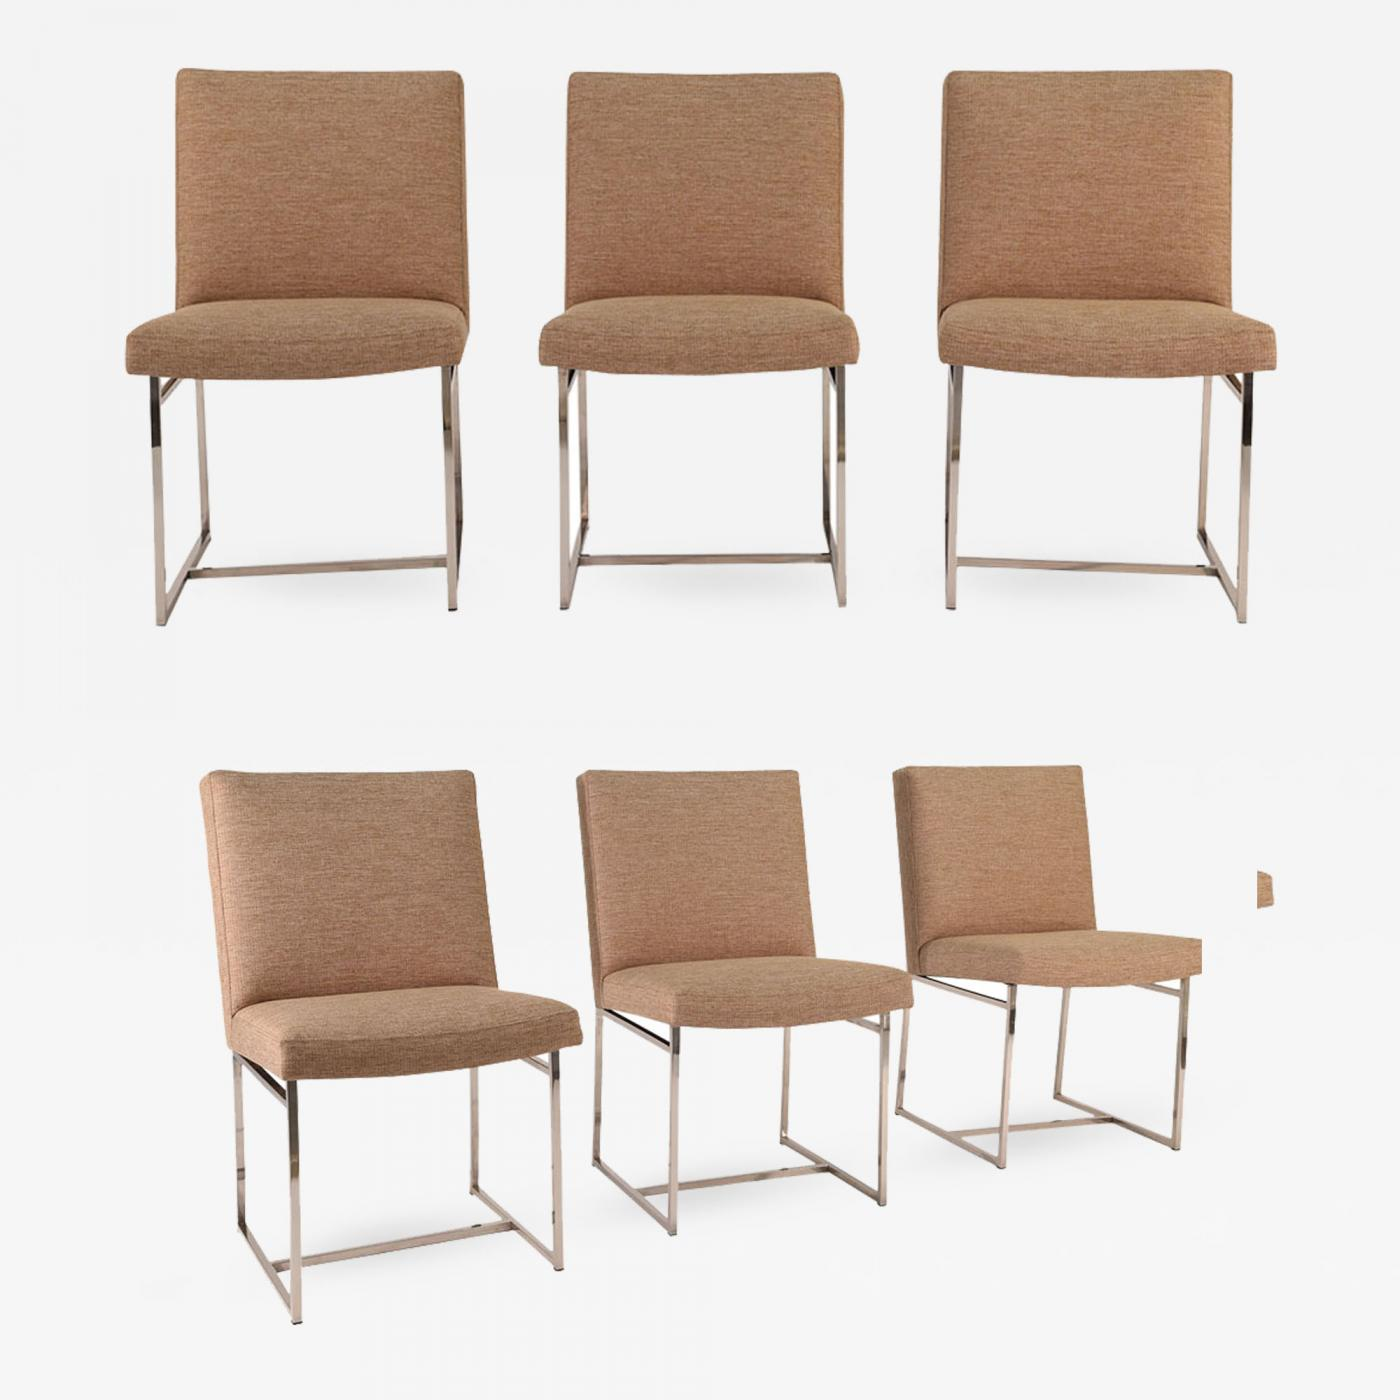 Incredible Milo Baughman Set Of Six Mid Century Modern Style Dining Chairs By Milo Baughman Ibusinesslaw Wood Chair Design Ideas Ibusinesslaworg